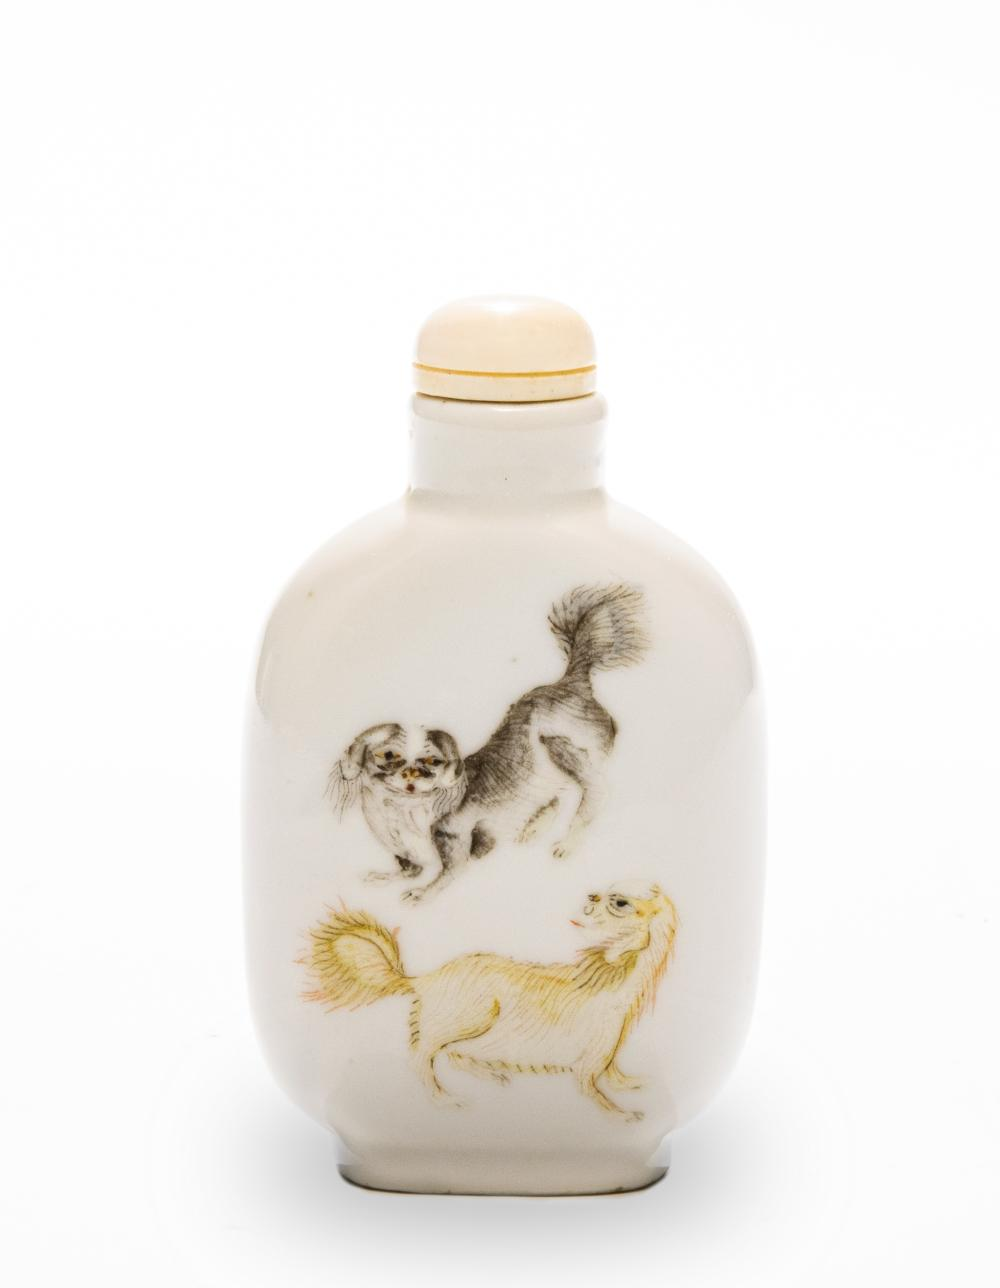 Lot 604: IMPERIAL DAOGUANG PERIOD FAMILLE ROSE SNUFF BOTTLE